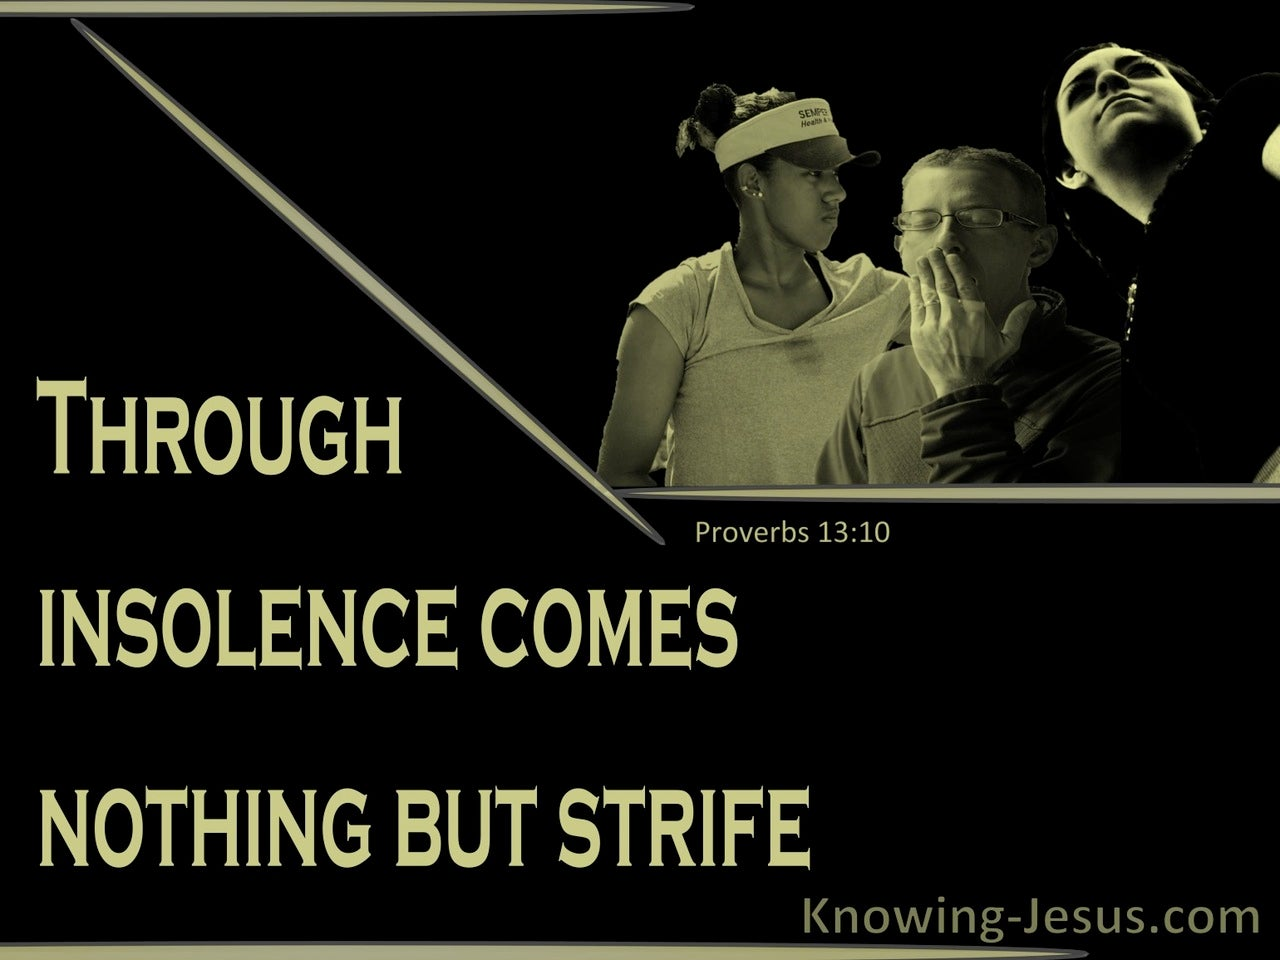 Proverbs 13:10 Through Insolence Comes Stife (green)